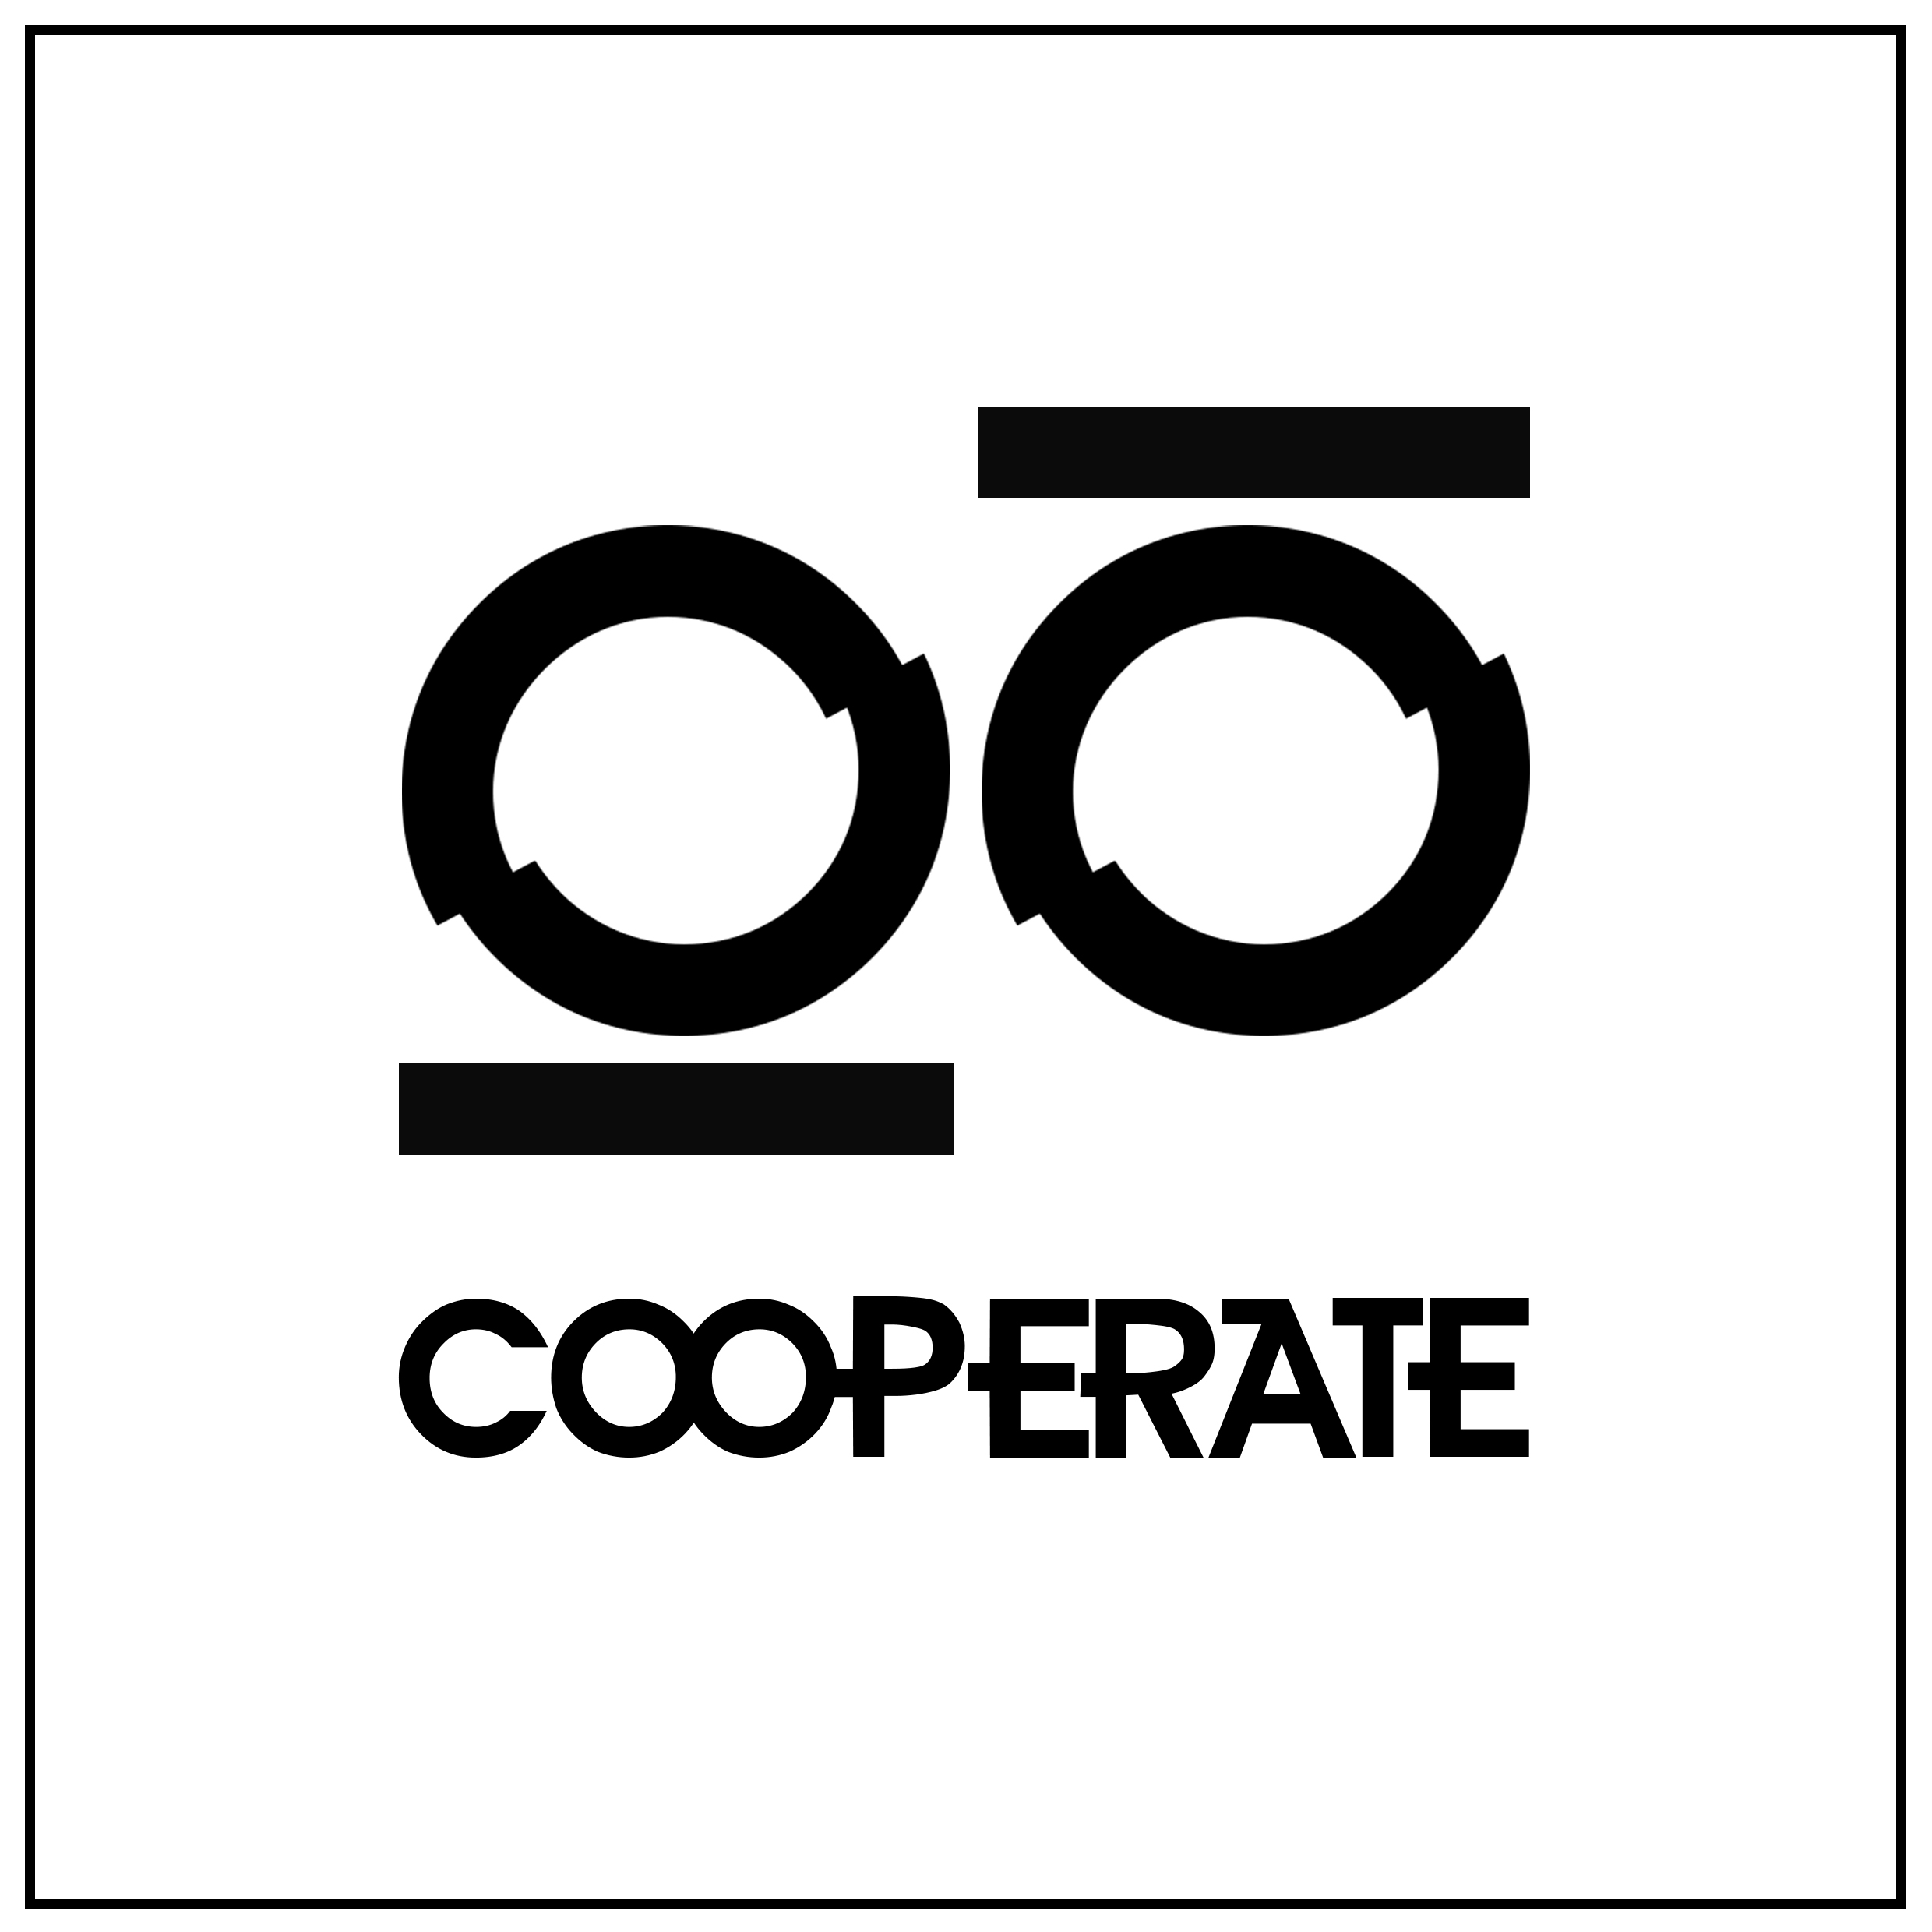 cooperate_LOGO_white.jpg